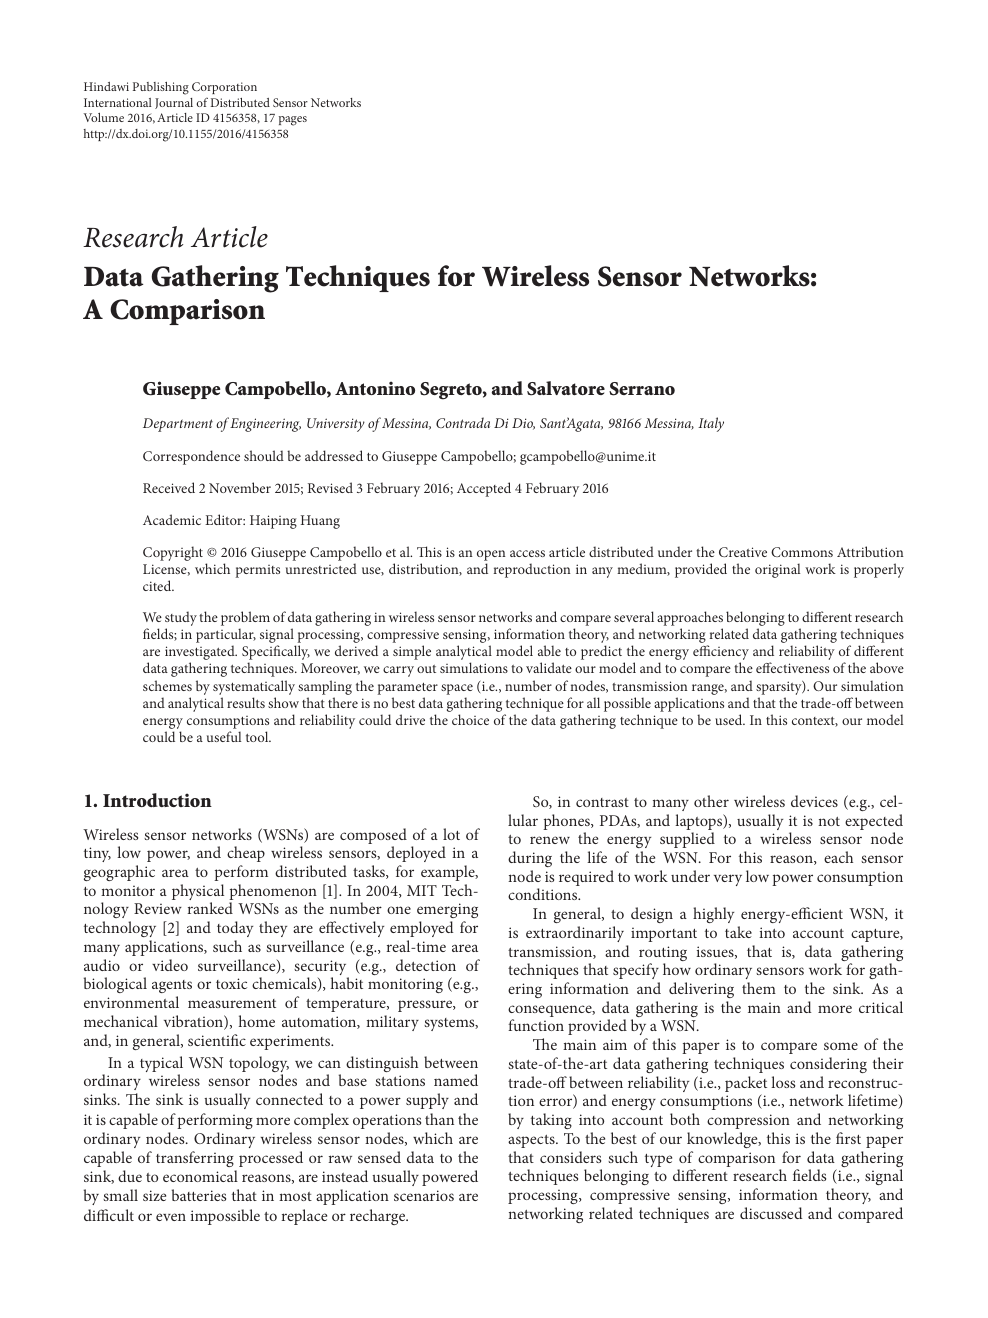 Data Gathering Techniques for Wireless Sensor Networks: A